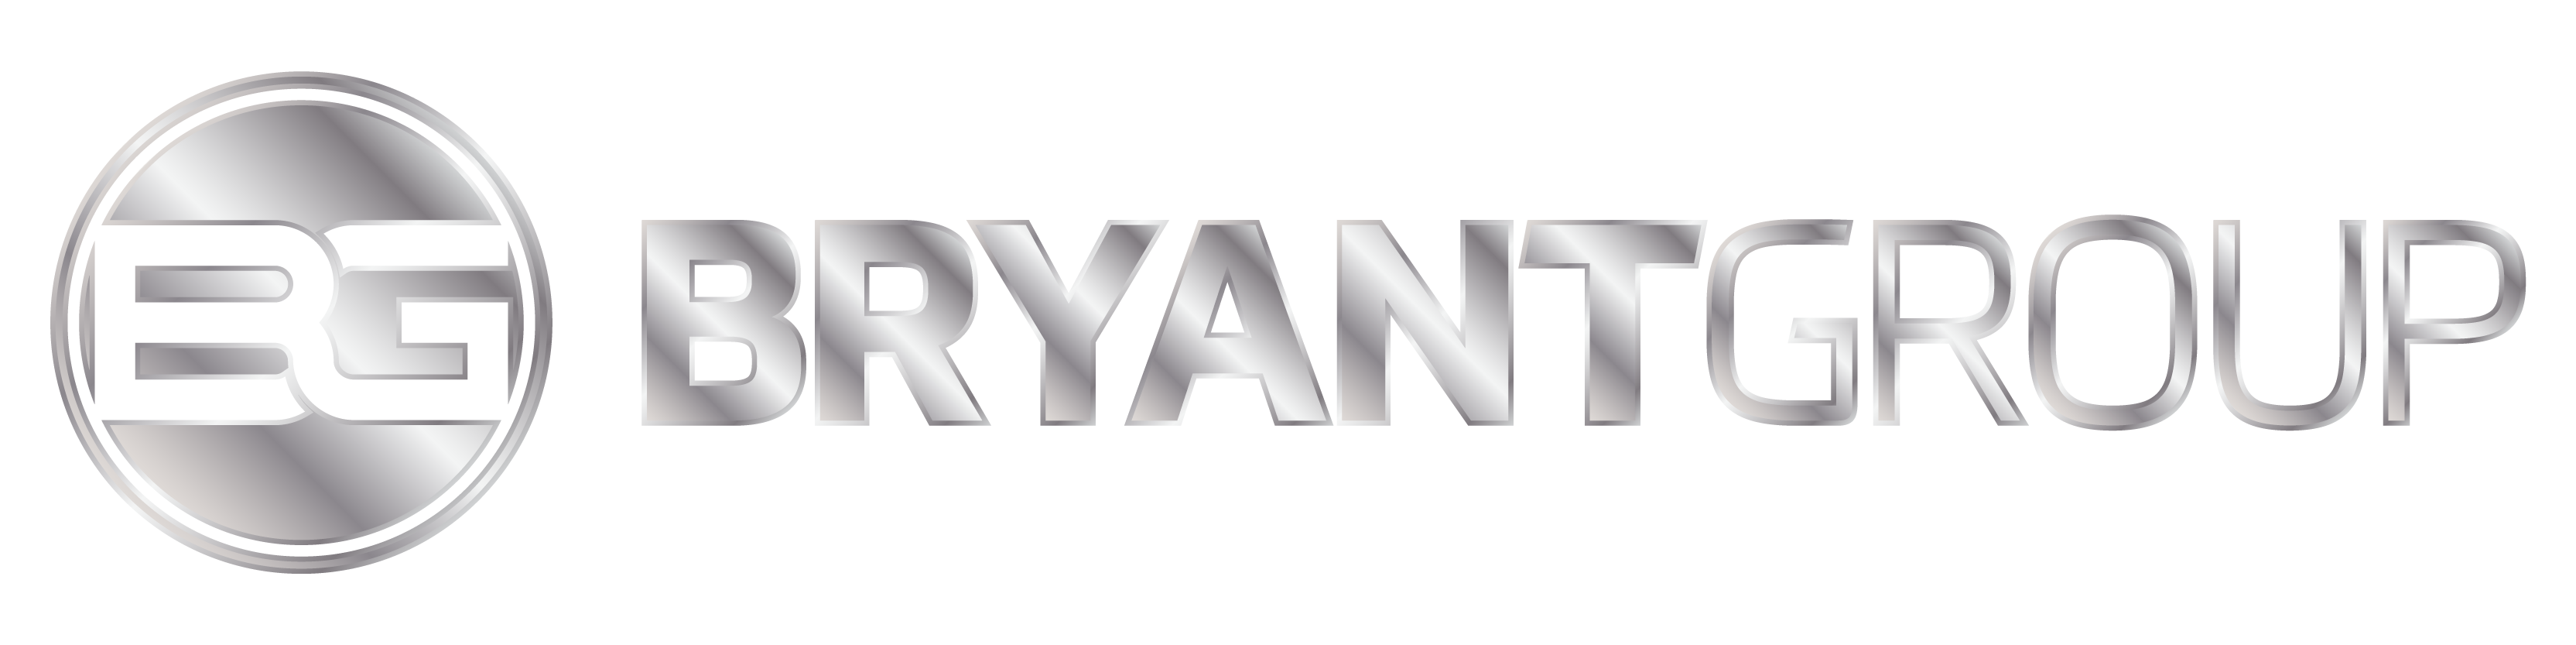 bryantgroup